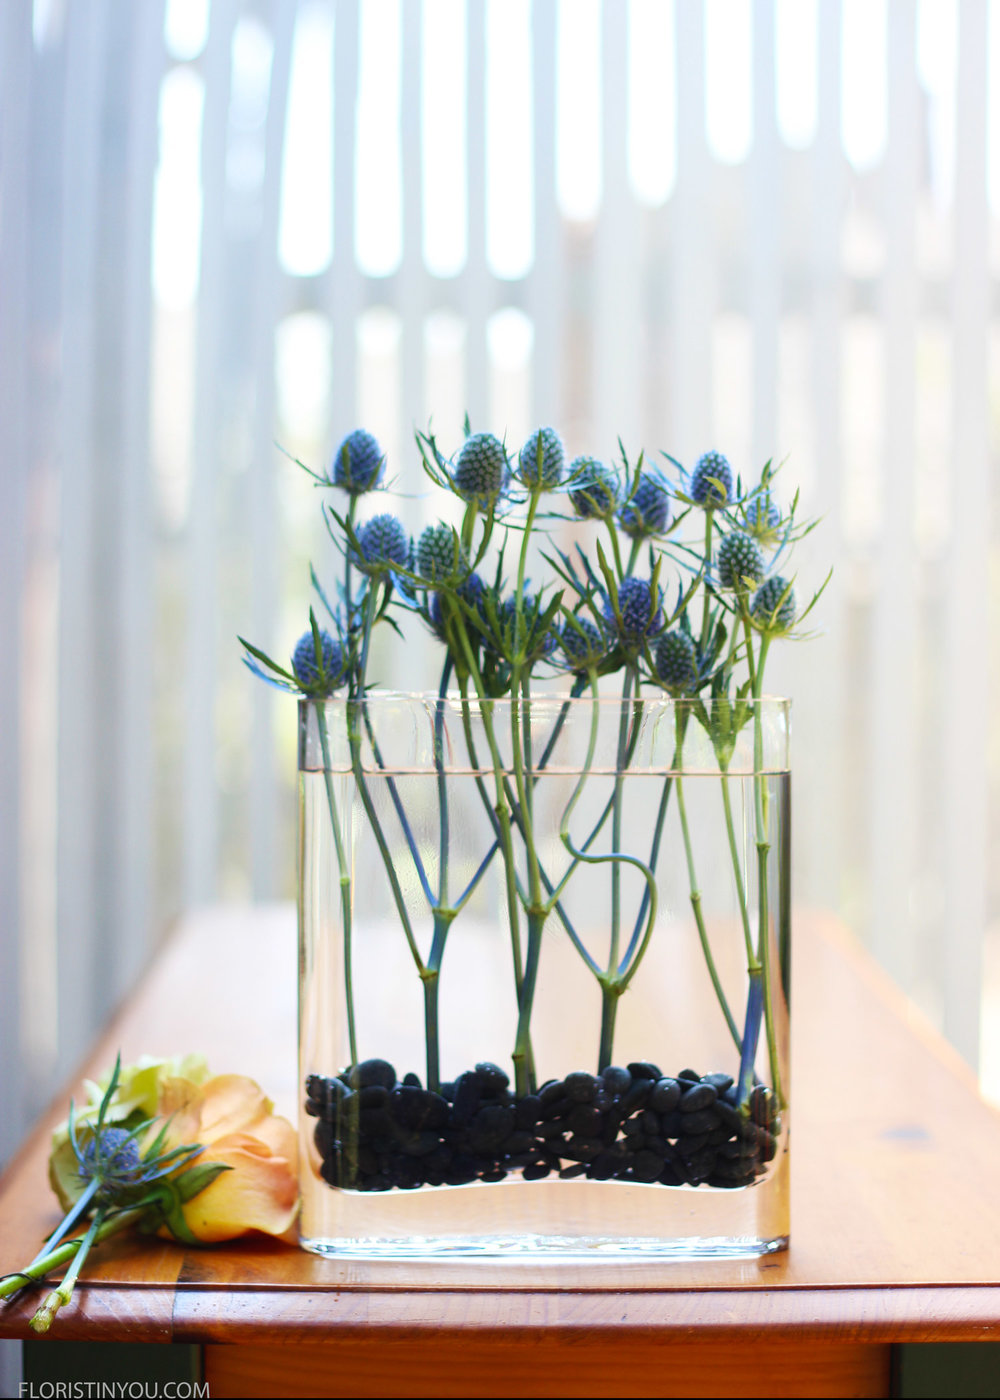 Put in a row of Sea Holly.  Make sure the stems go straight down.